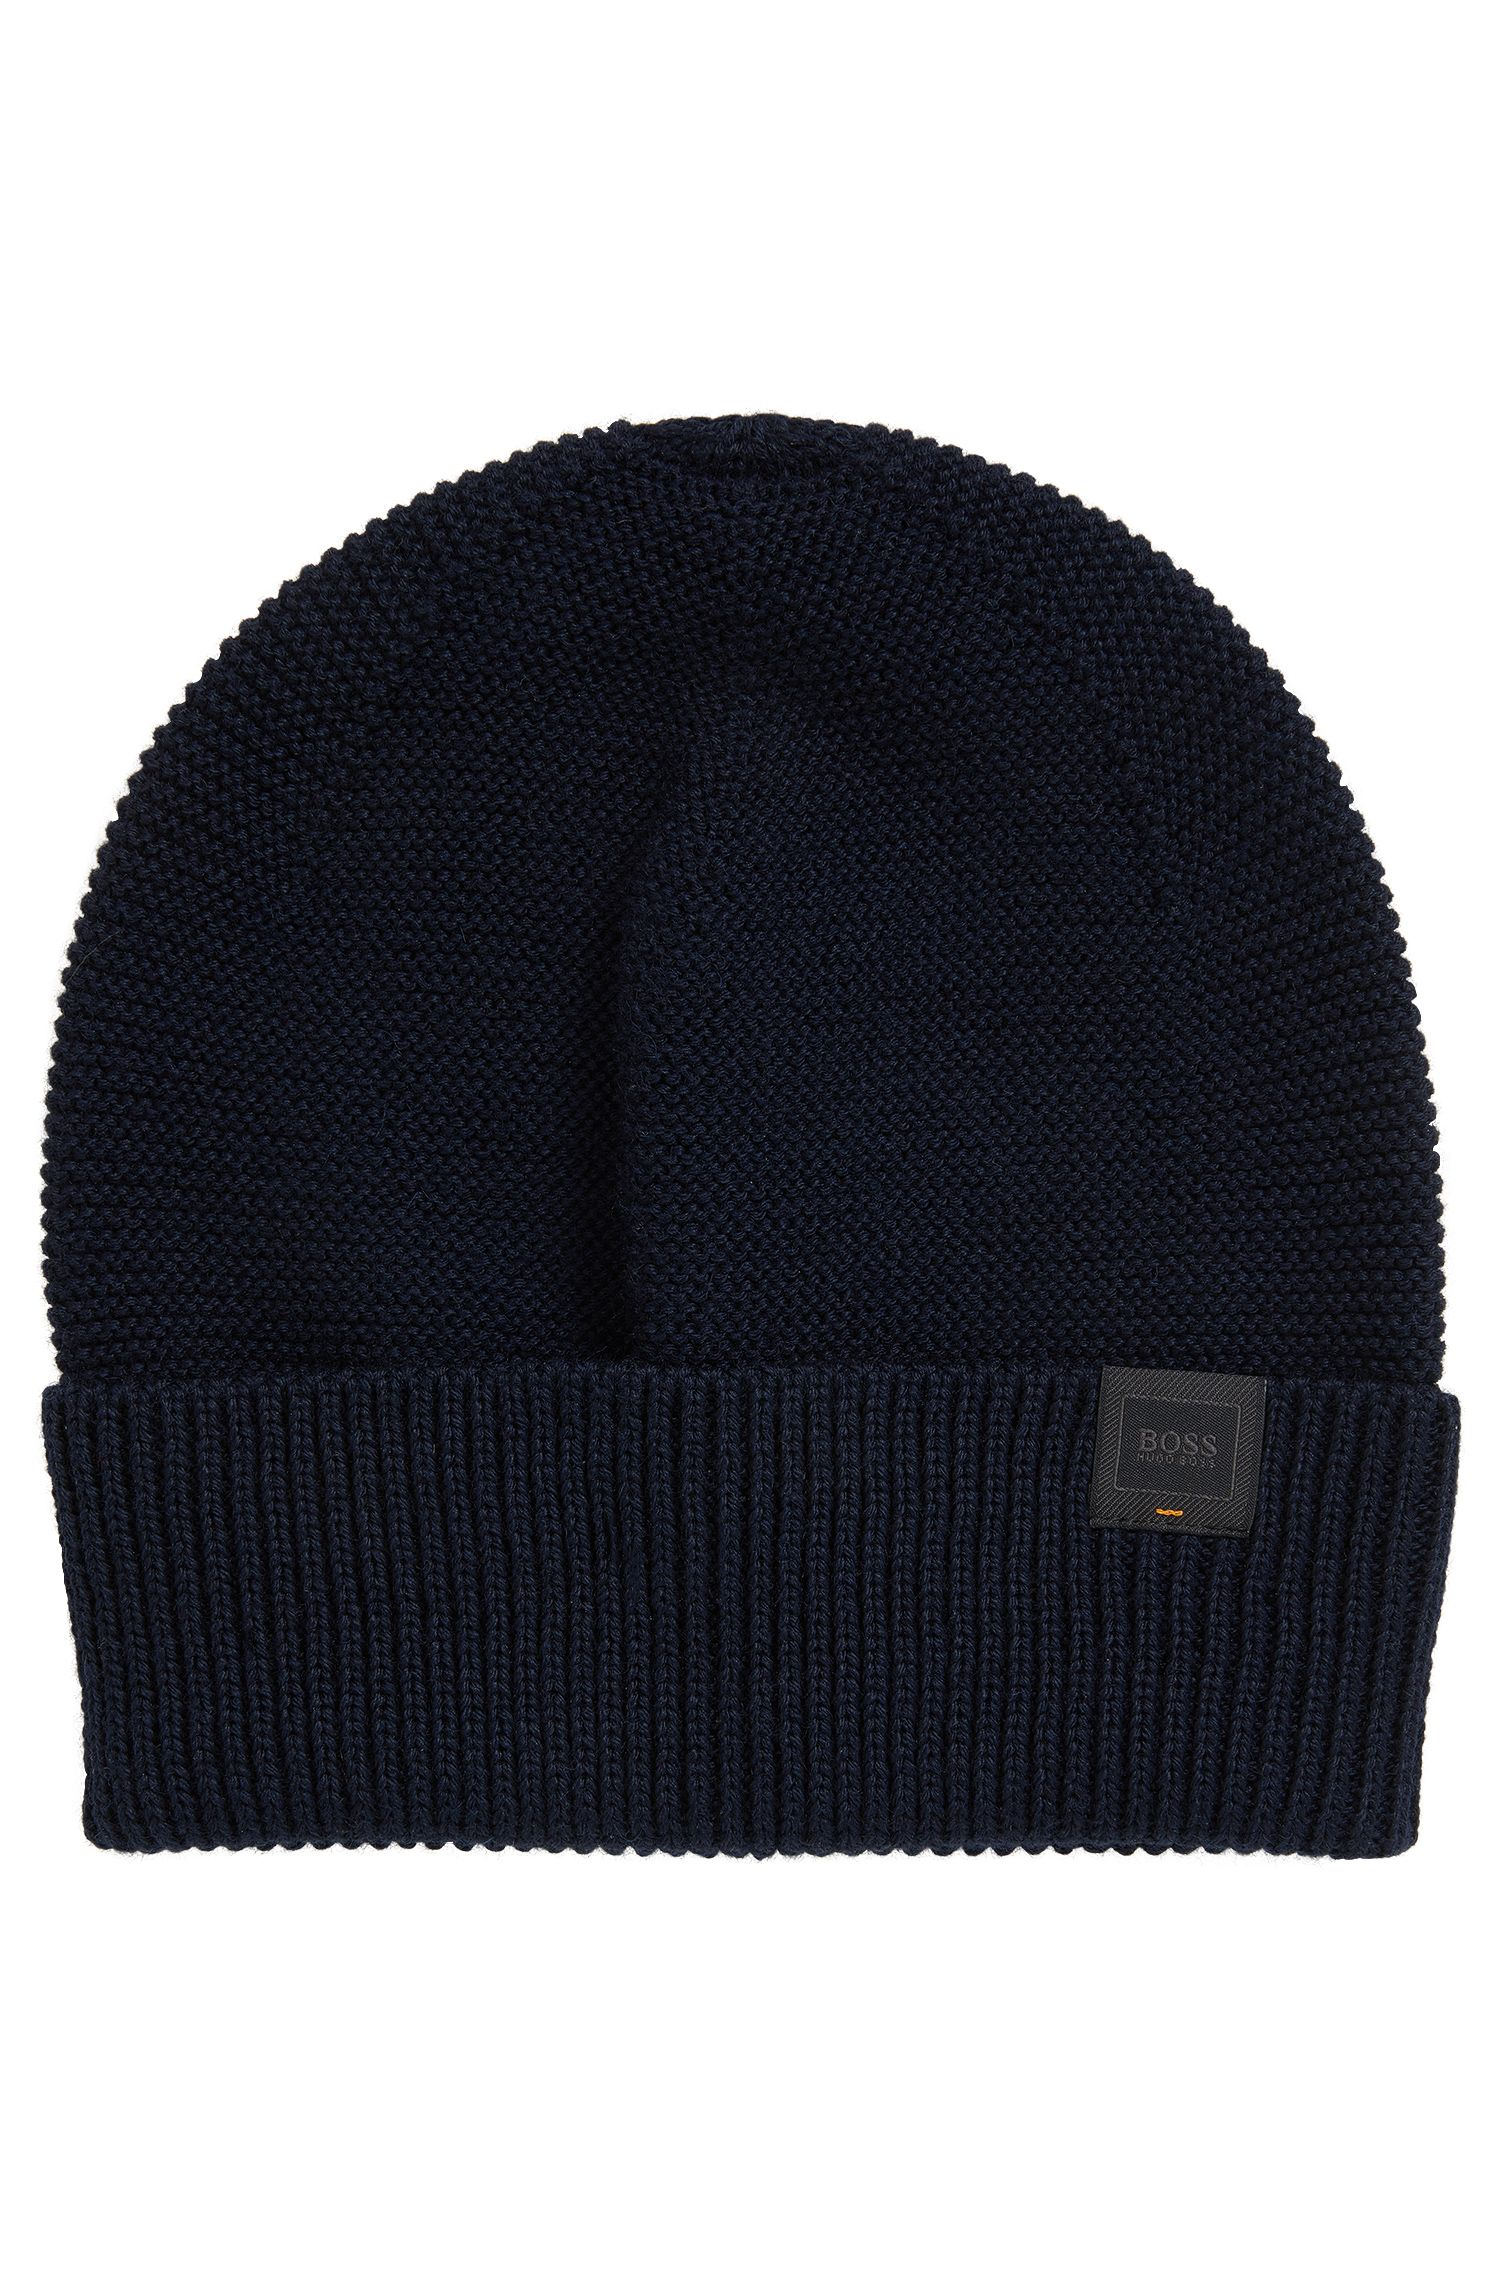 Knitted beanie hat with woven logo label